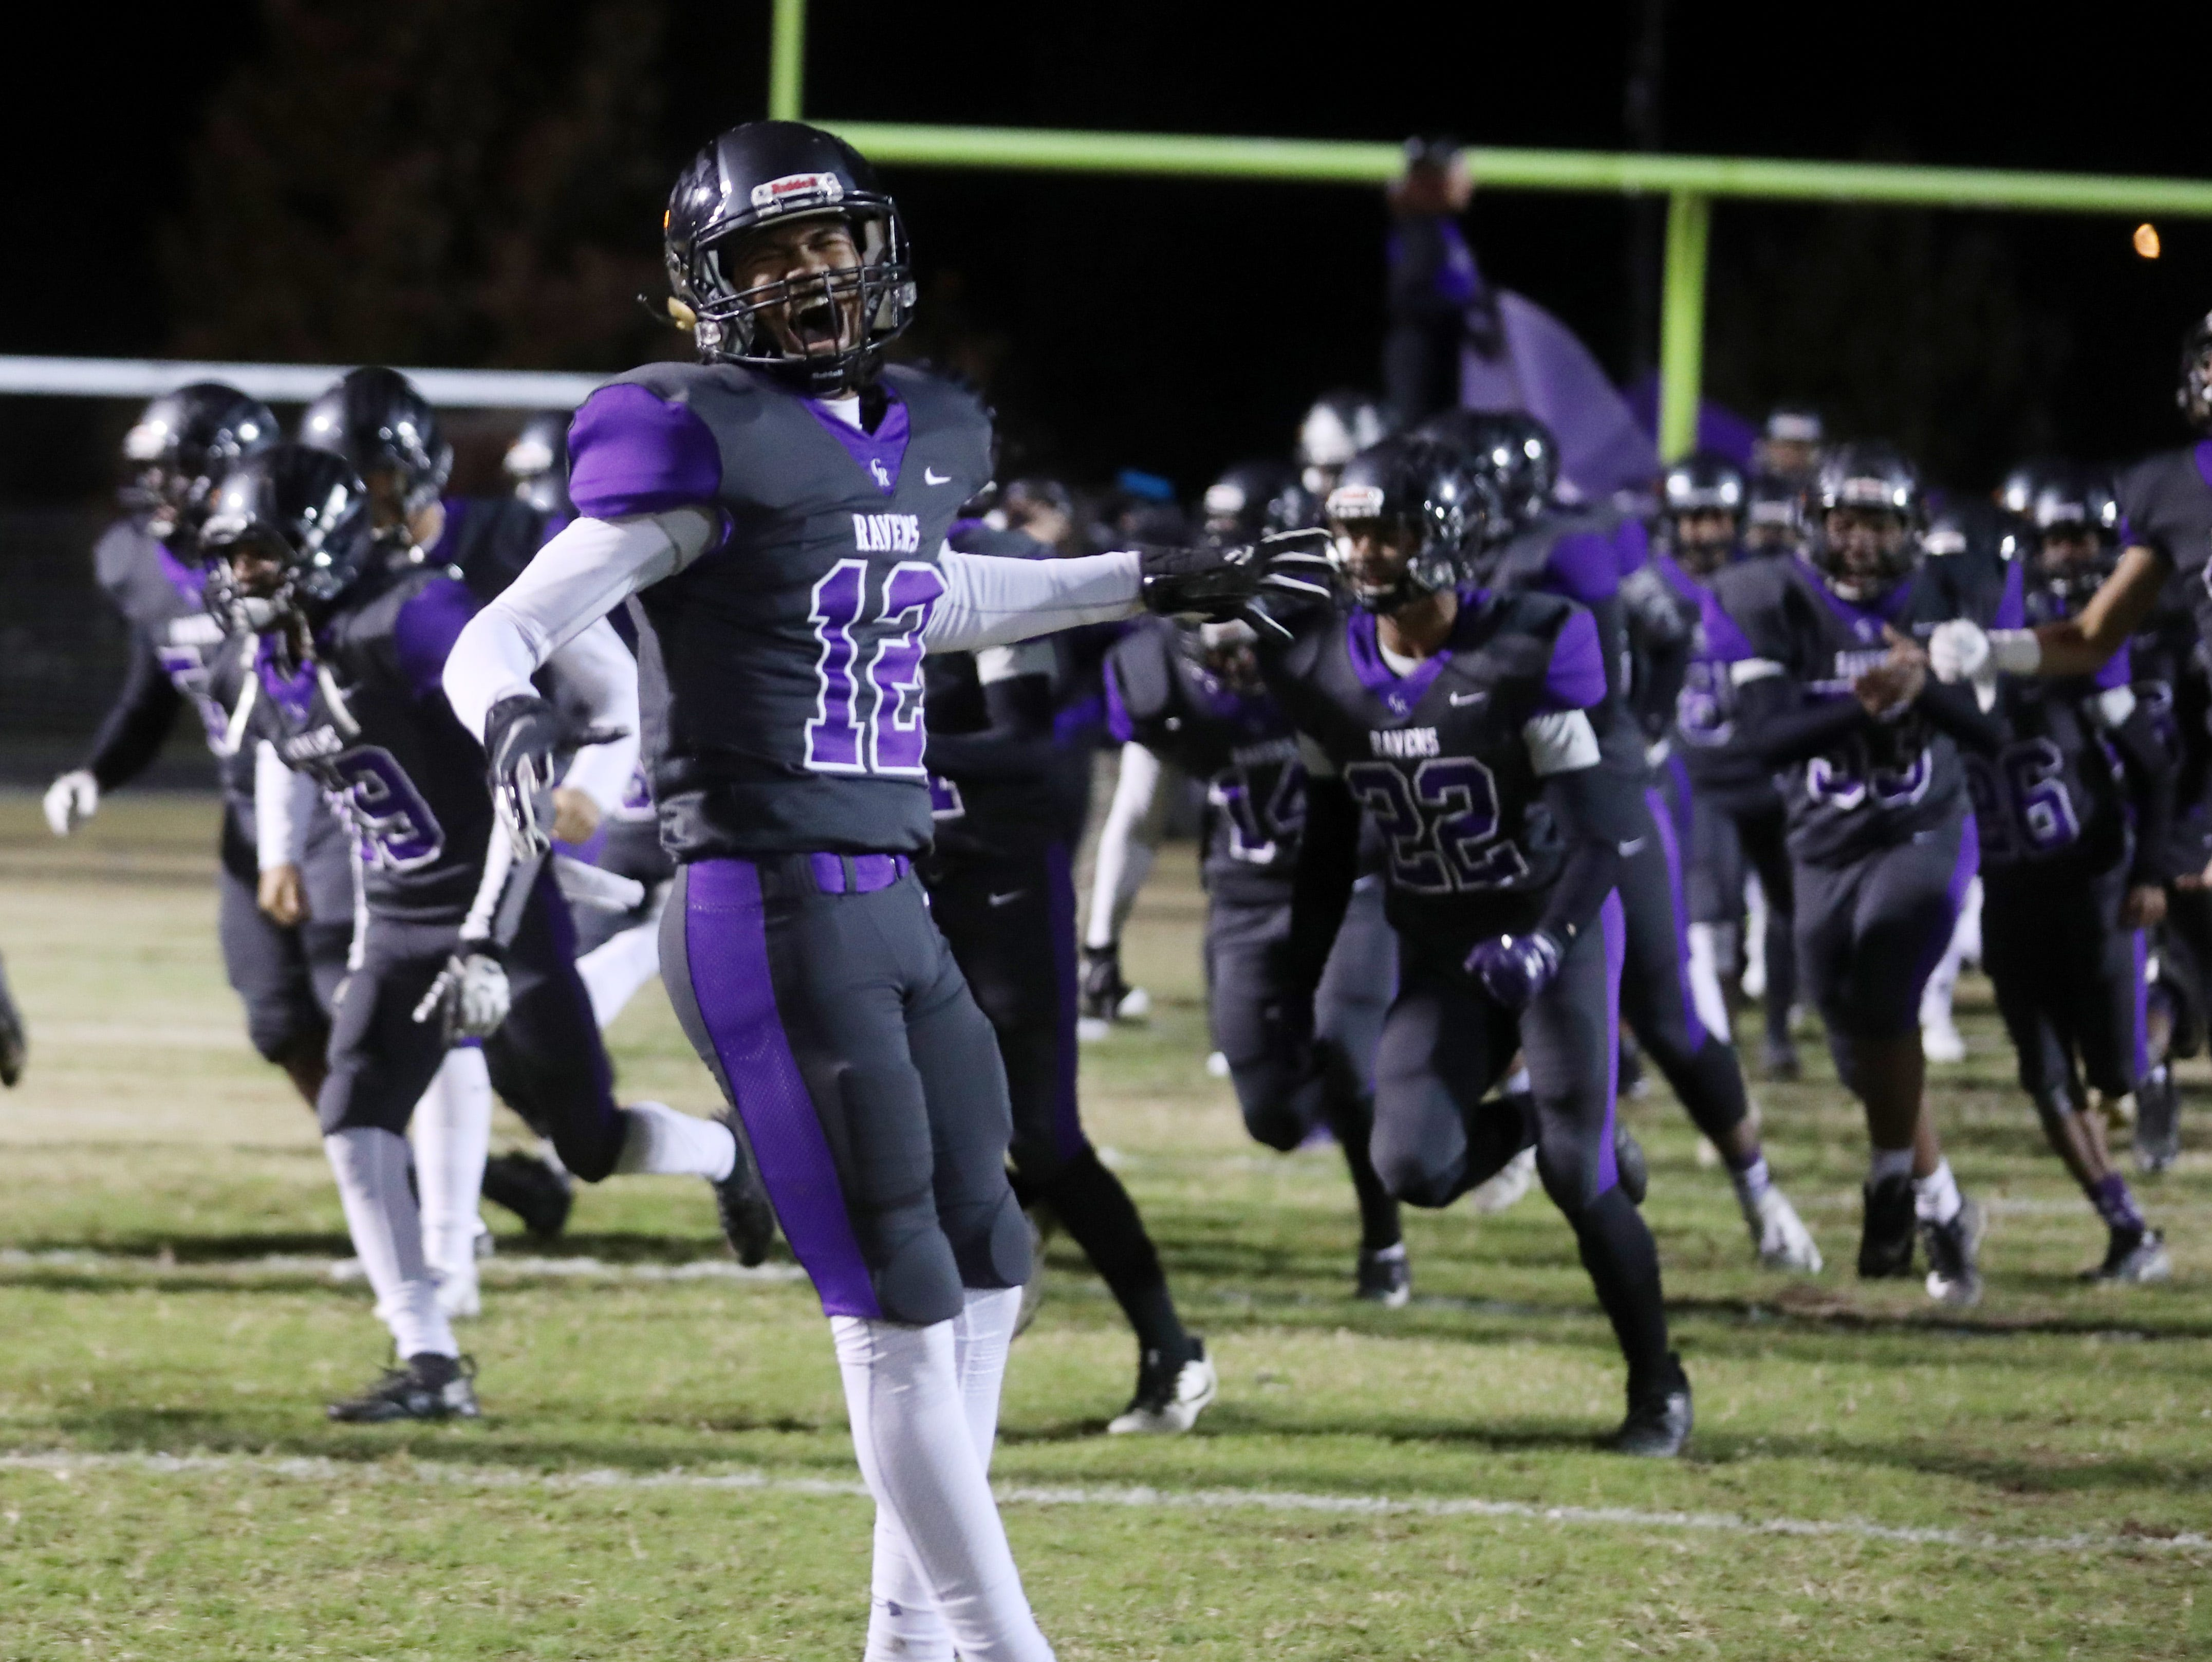 Cane Ridge players take the field for their 2018 TSSAA play-off game against Ravenwood at Cane Ridge Friday, November 9, 2018.